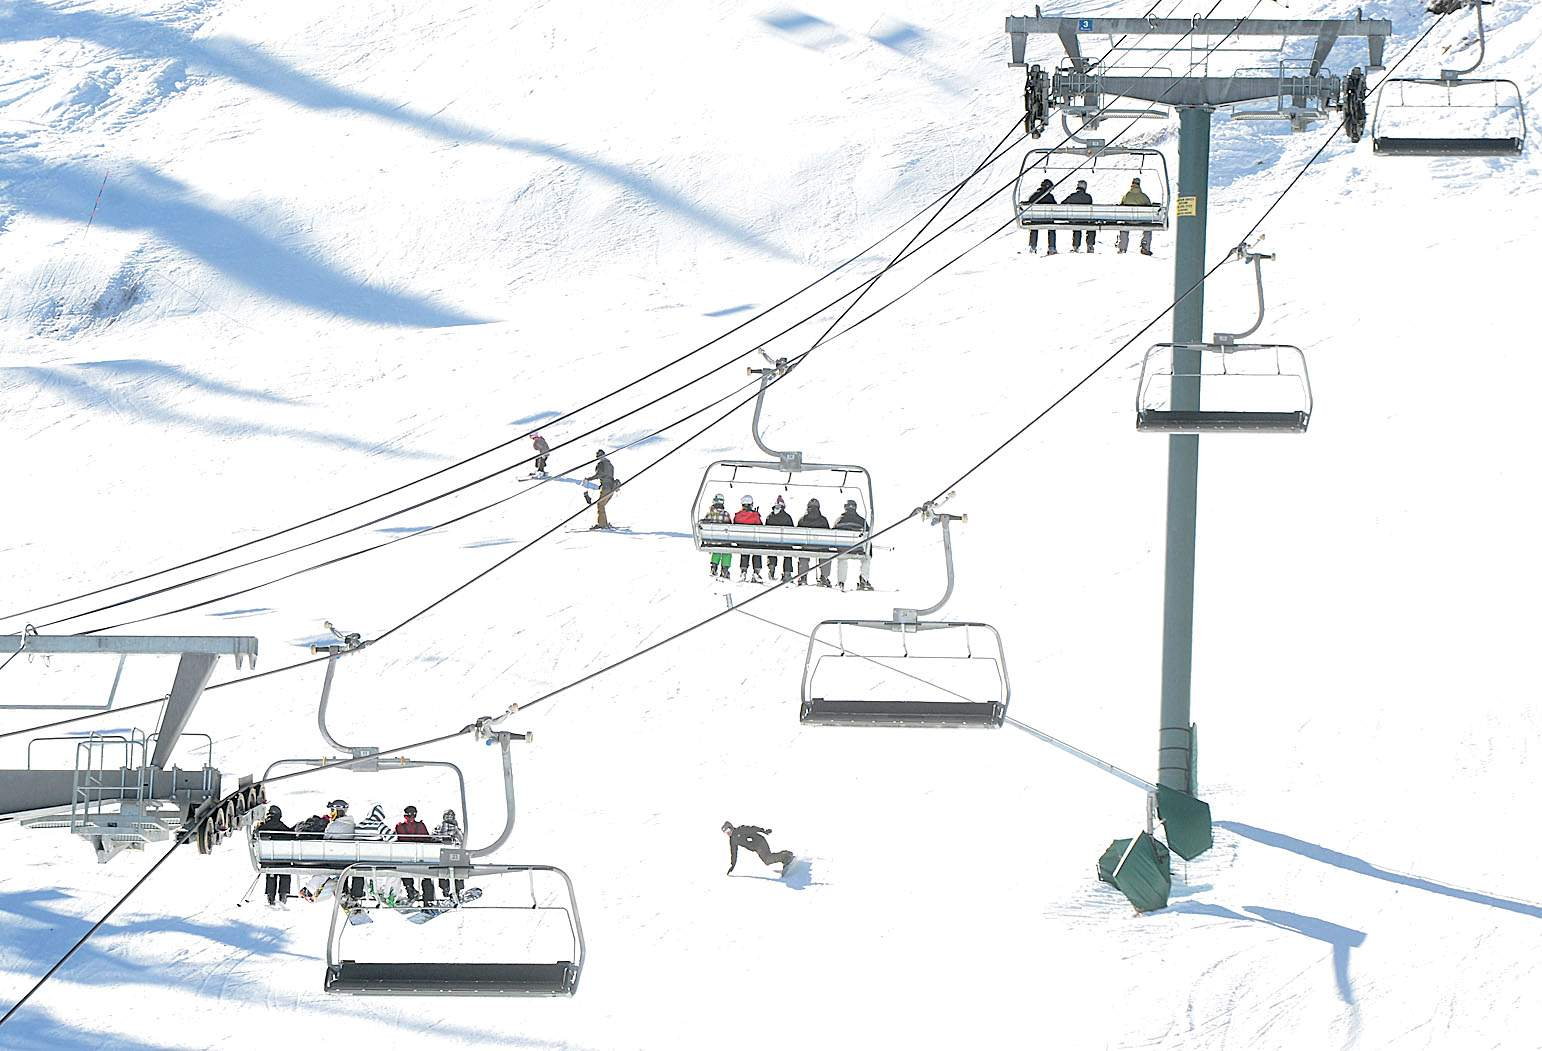 December Snow Gives Ski Retailers A Lift